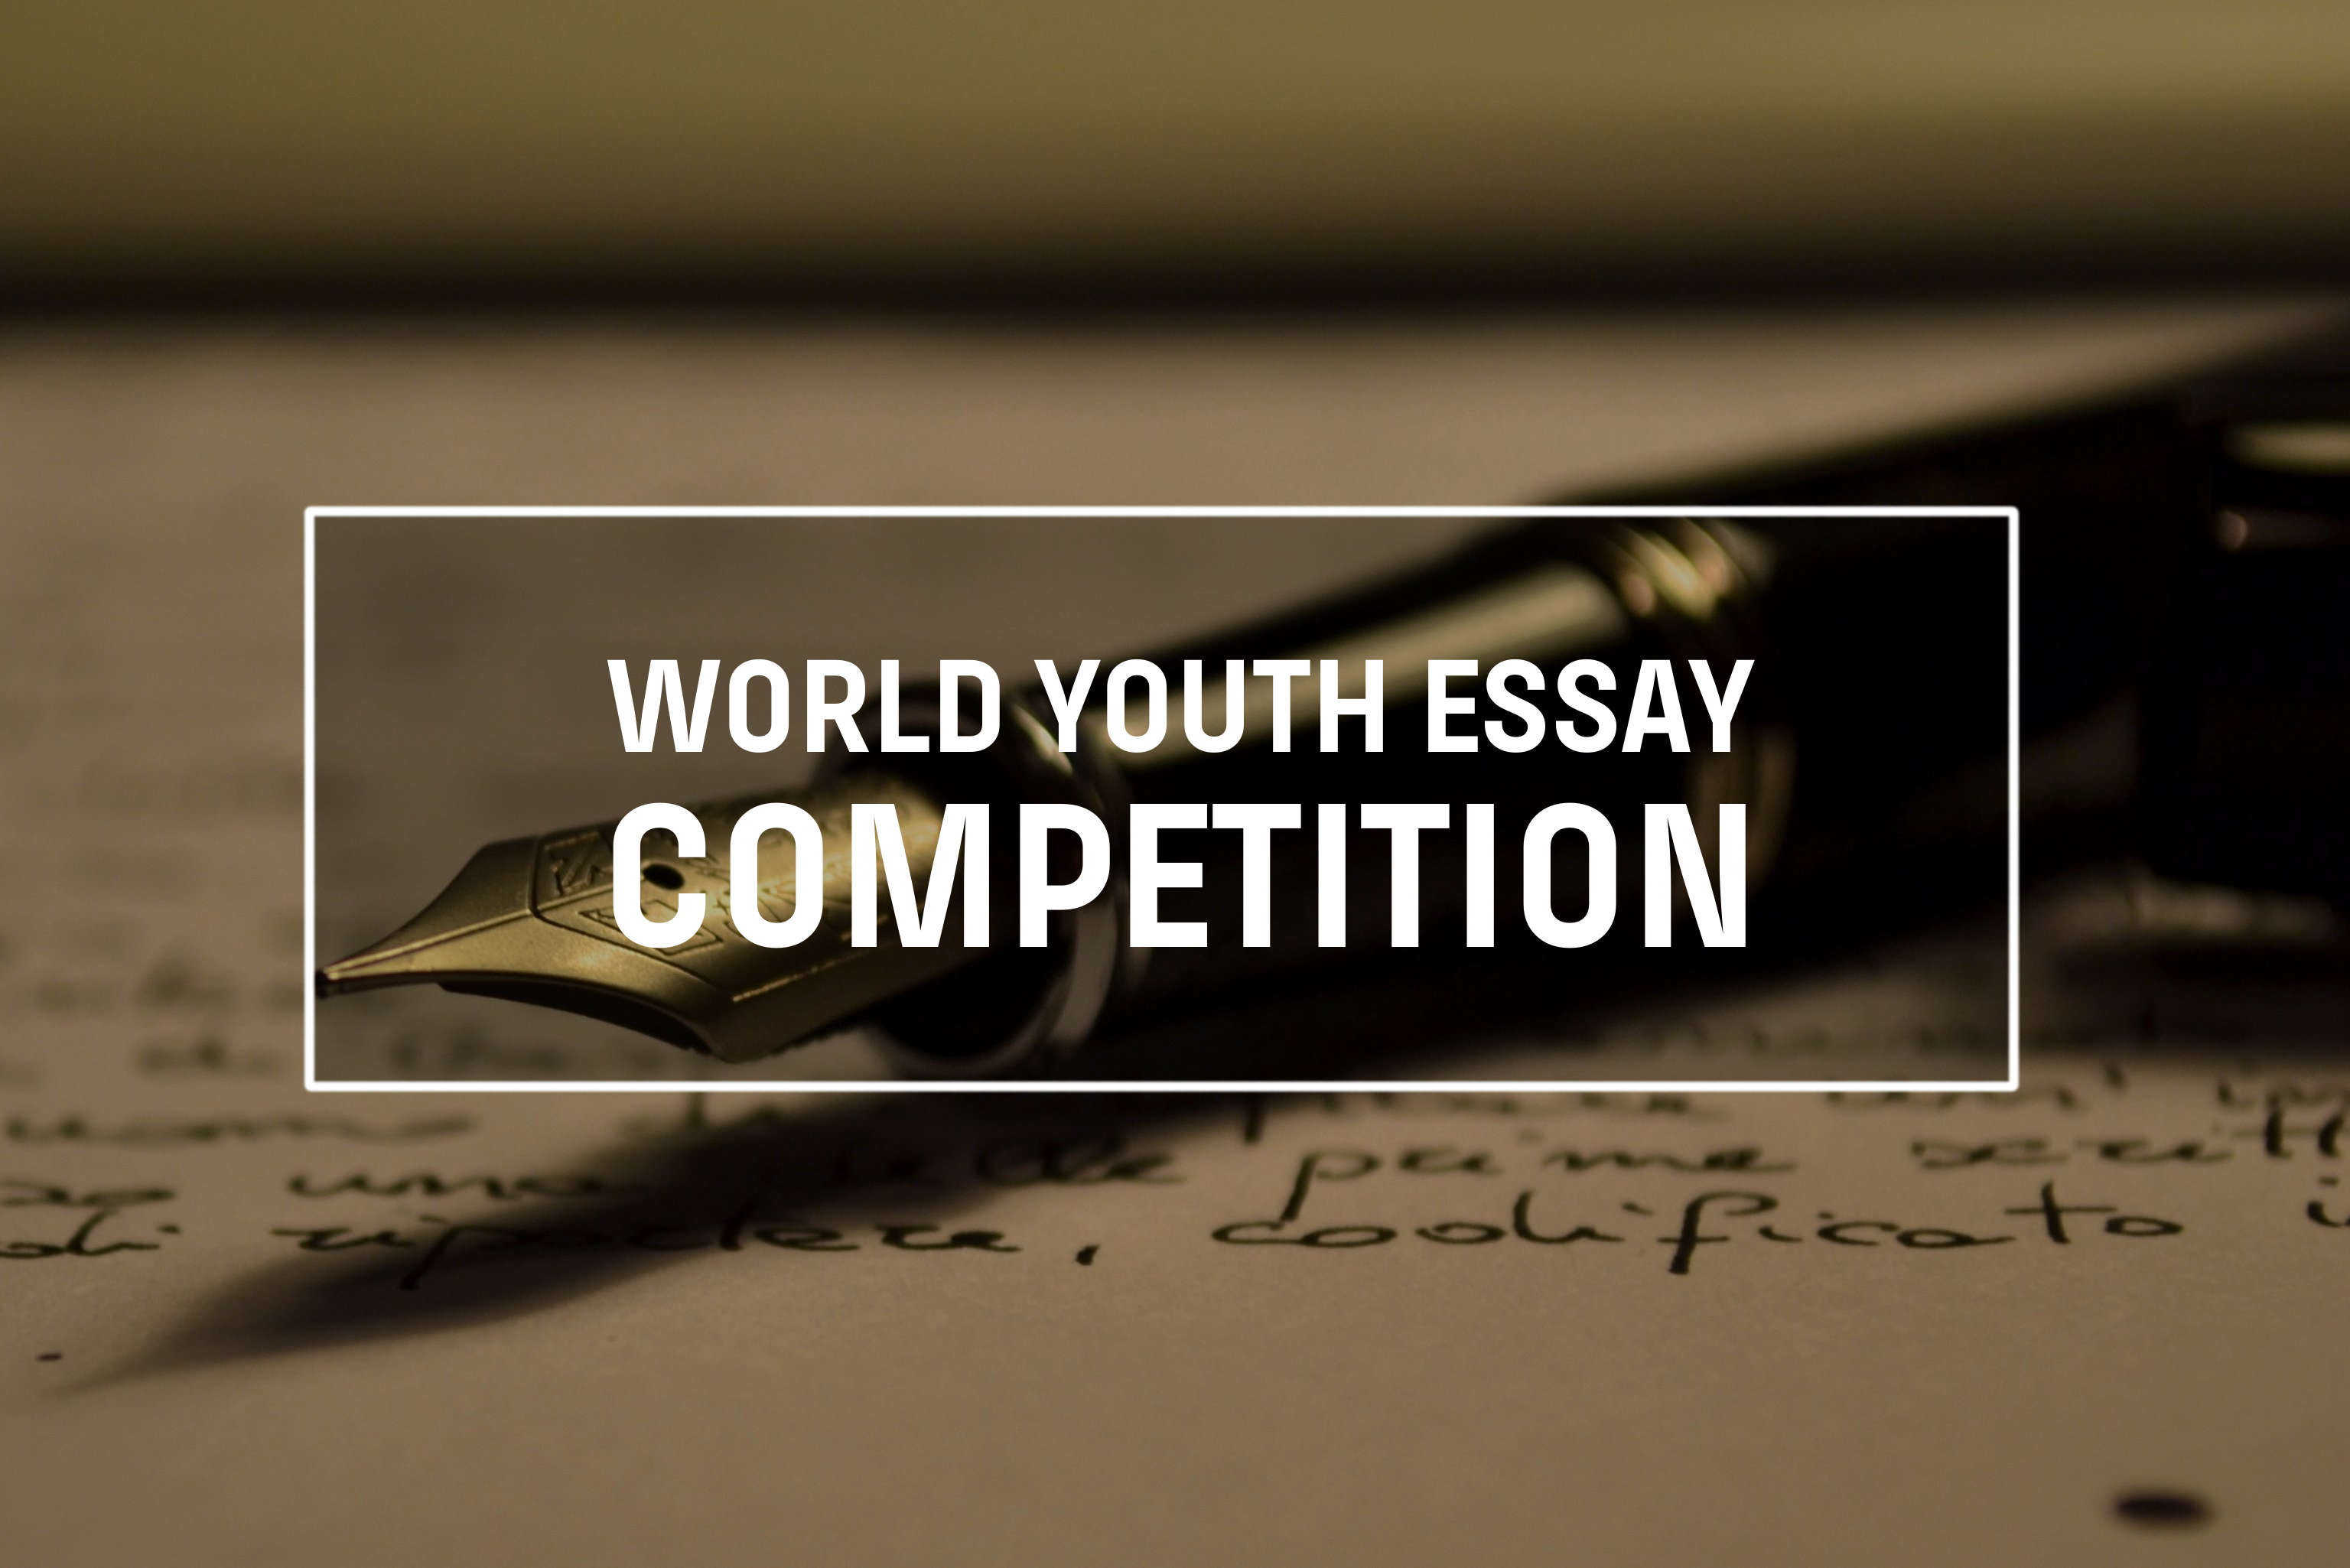 international youth essay competition This week's economic reform feature service articles highlight the final two winning essays from cipe's 2011 international youth essay competition riska mirzalina and ruth nyambura, the second and third place winners respectively in the corruption category, discuss how youth in their countries can engage in anti-corruption.